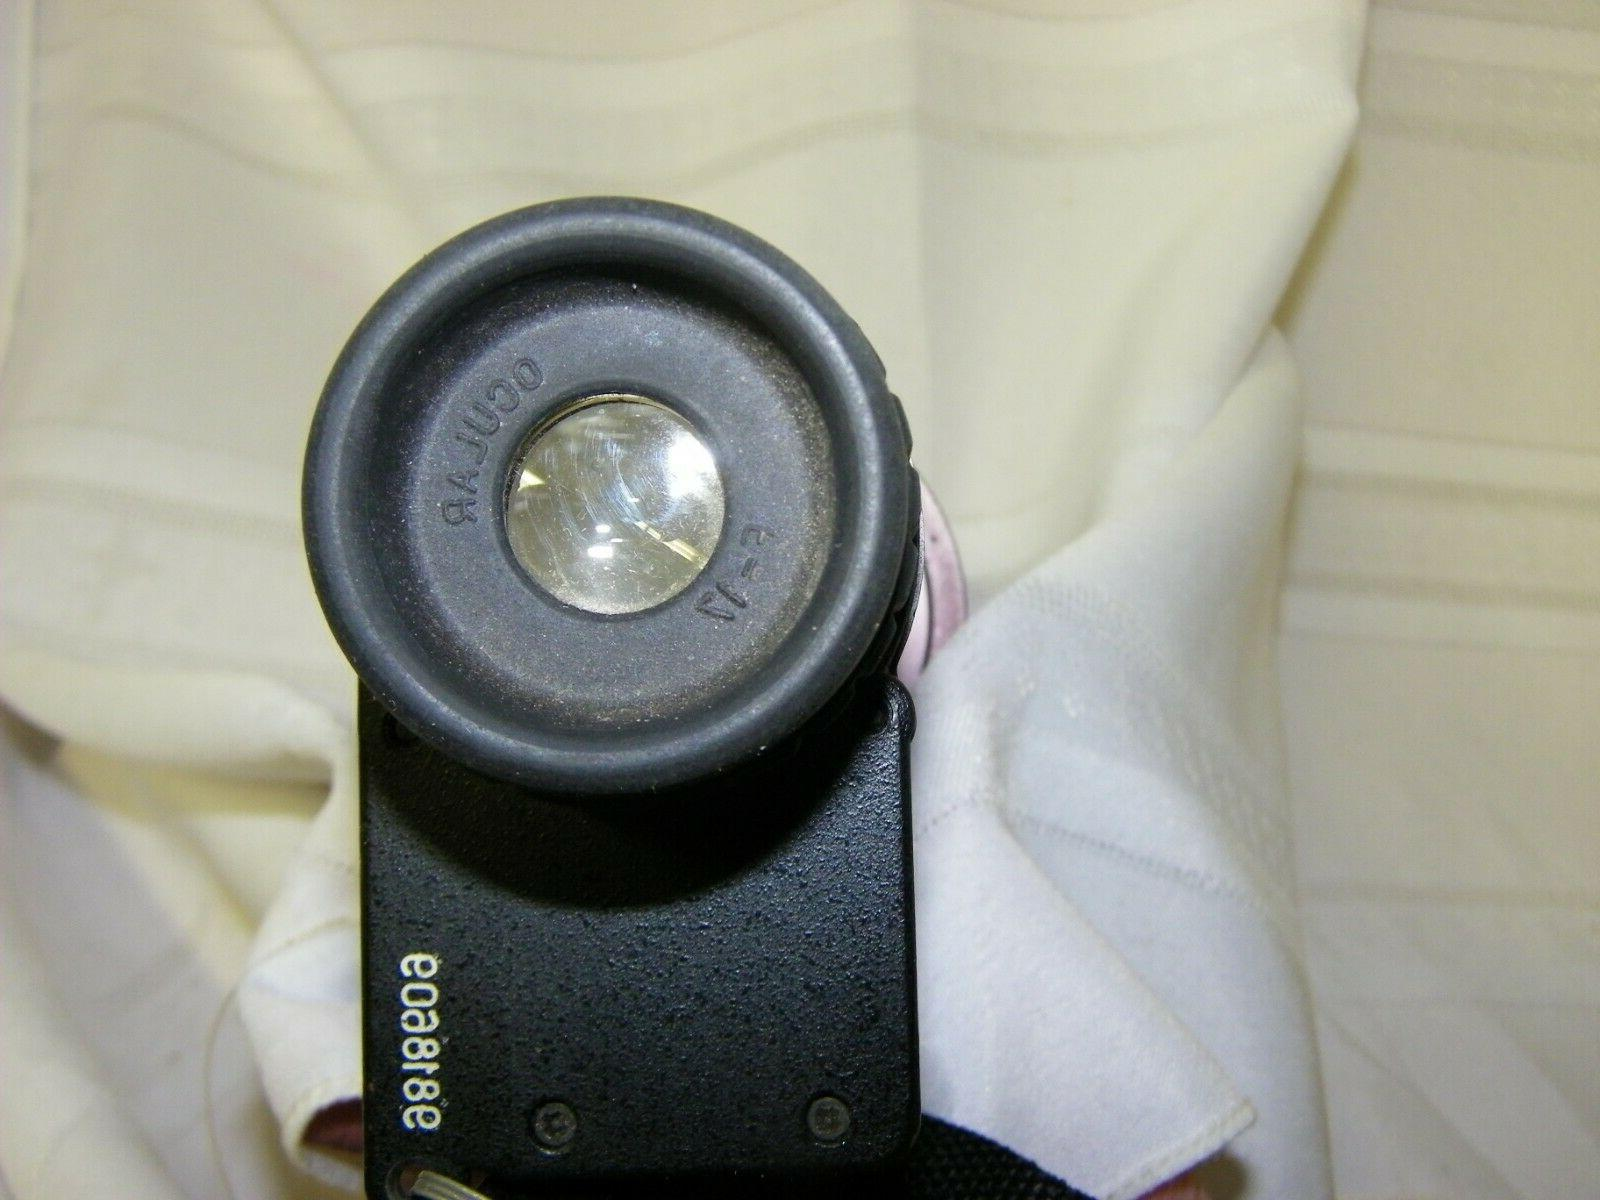 Night Monocular by Moonlight Inc. Cyclop-1 made